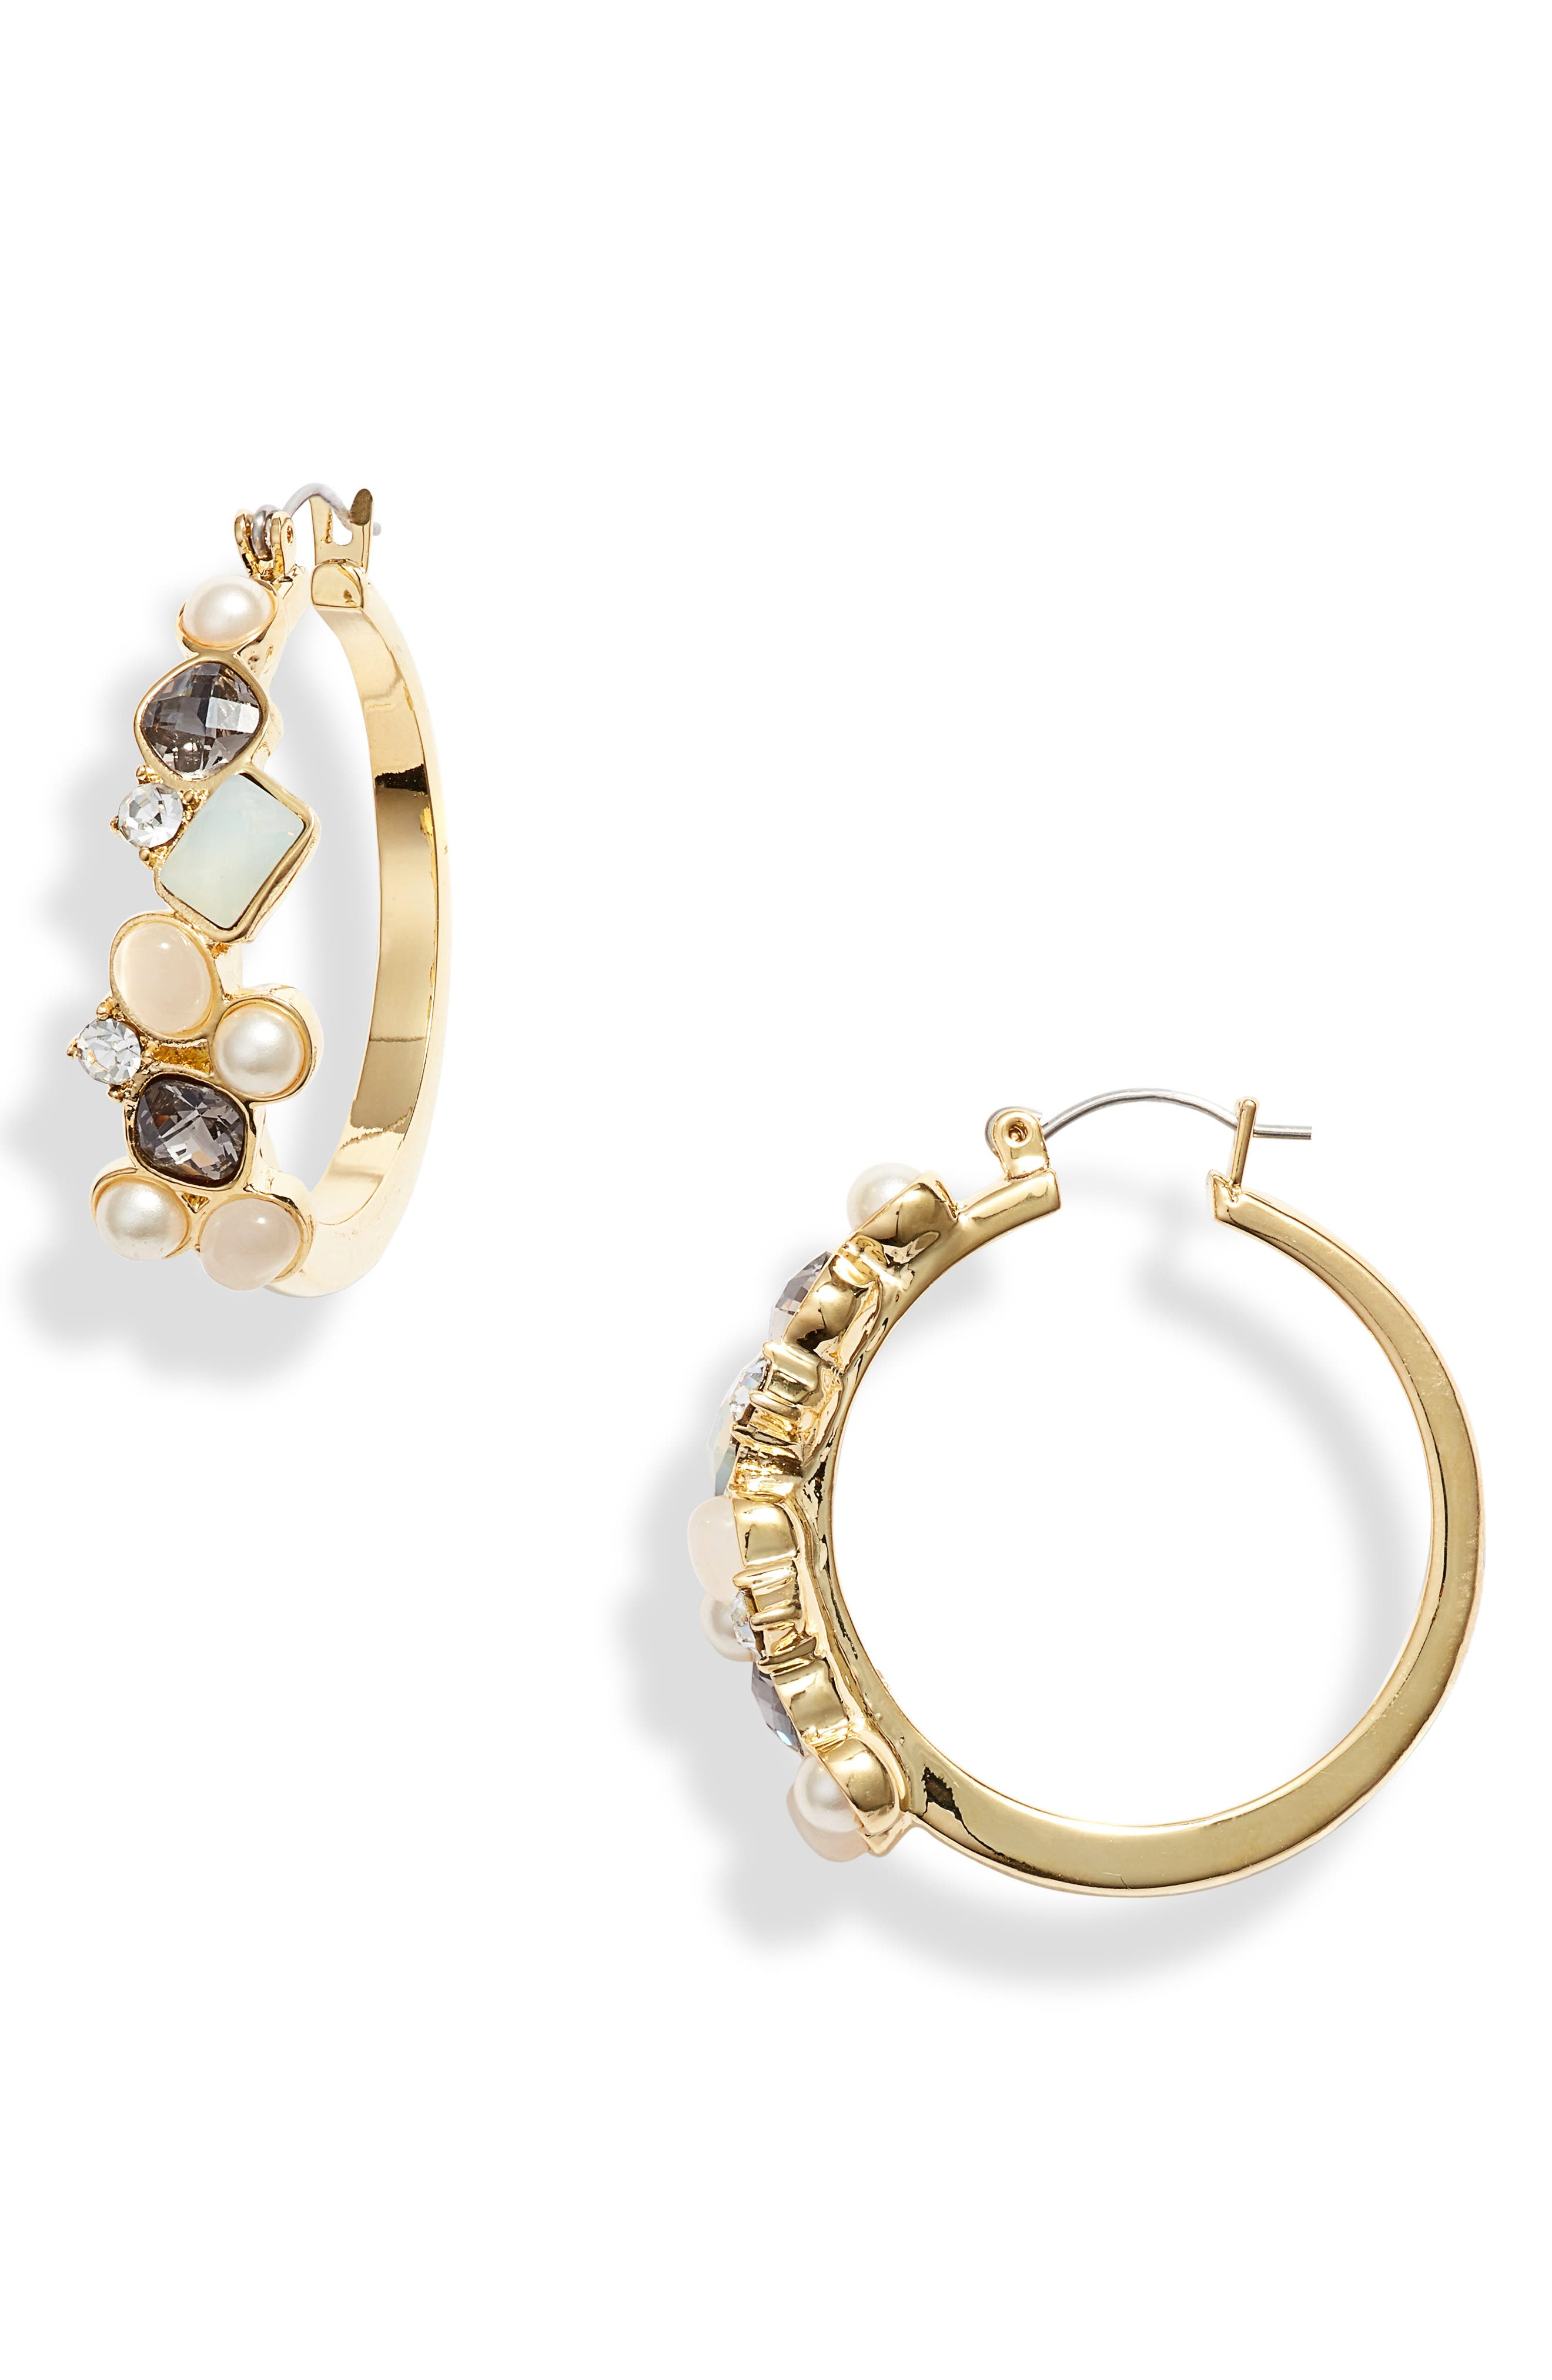 VINCE CAMUTO Cluster Hoop Earrings, Main, color, GOLD/ IVORY